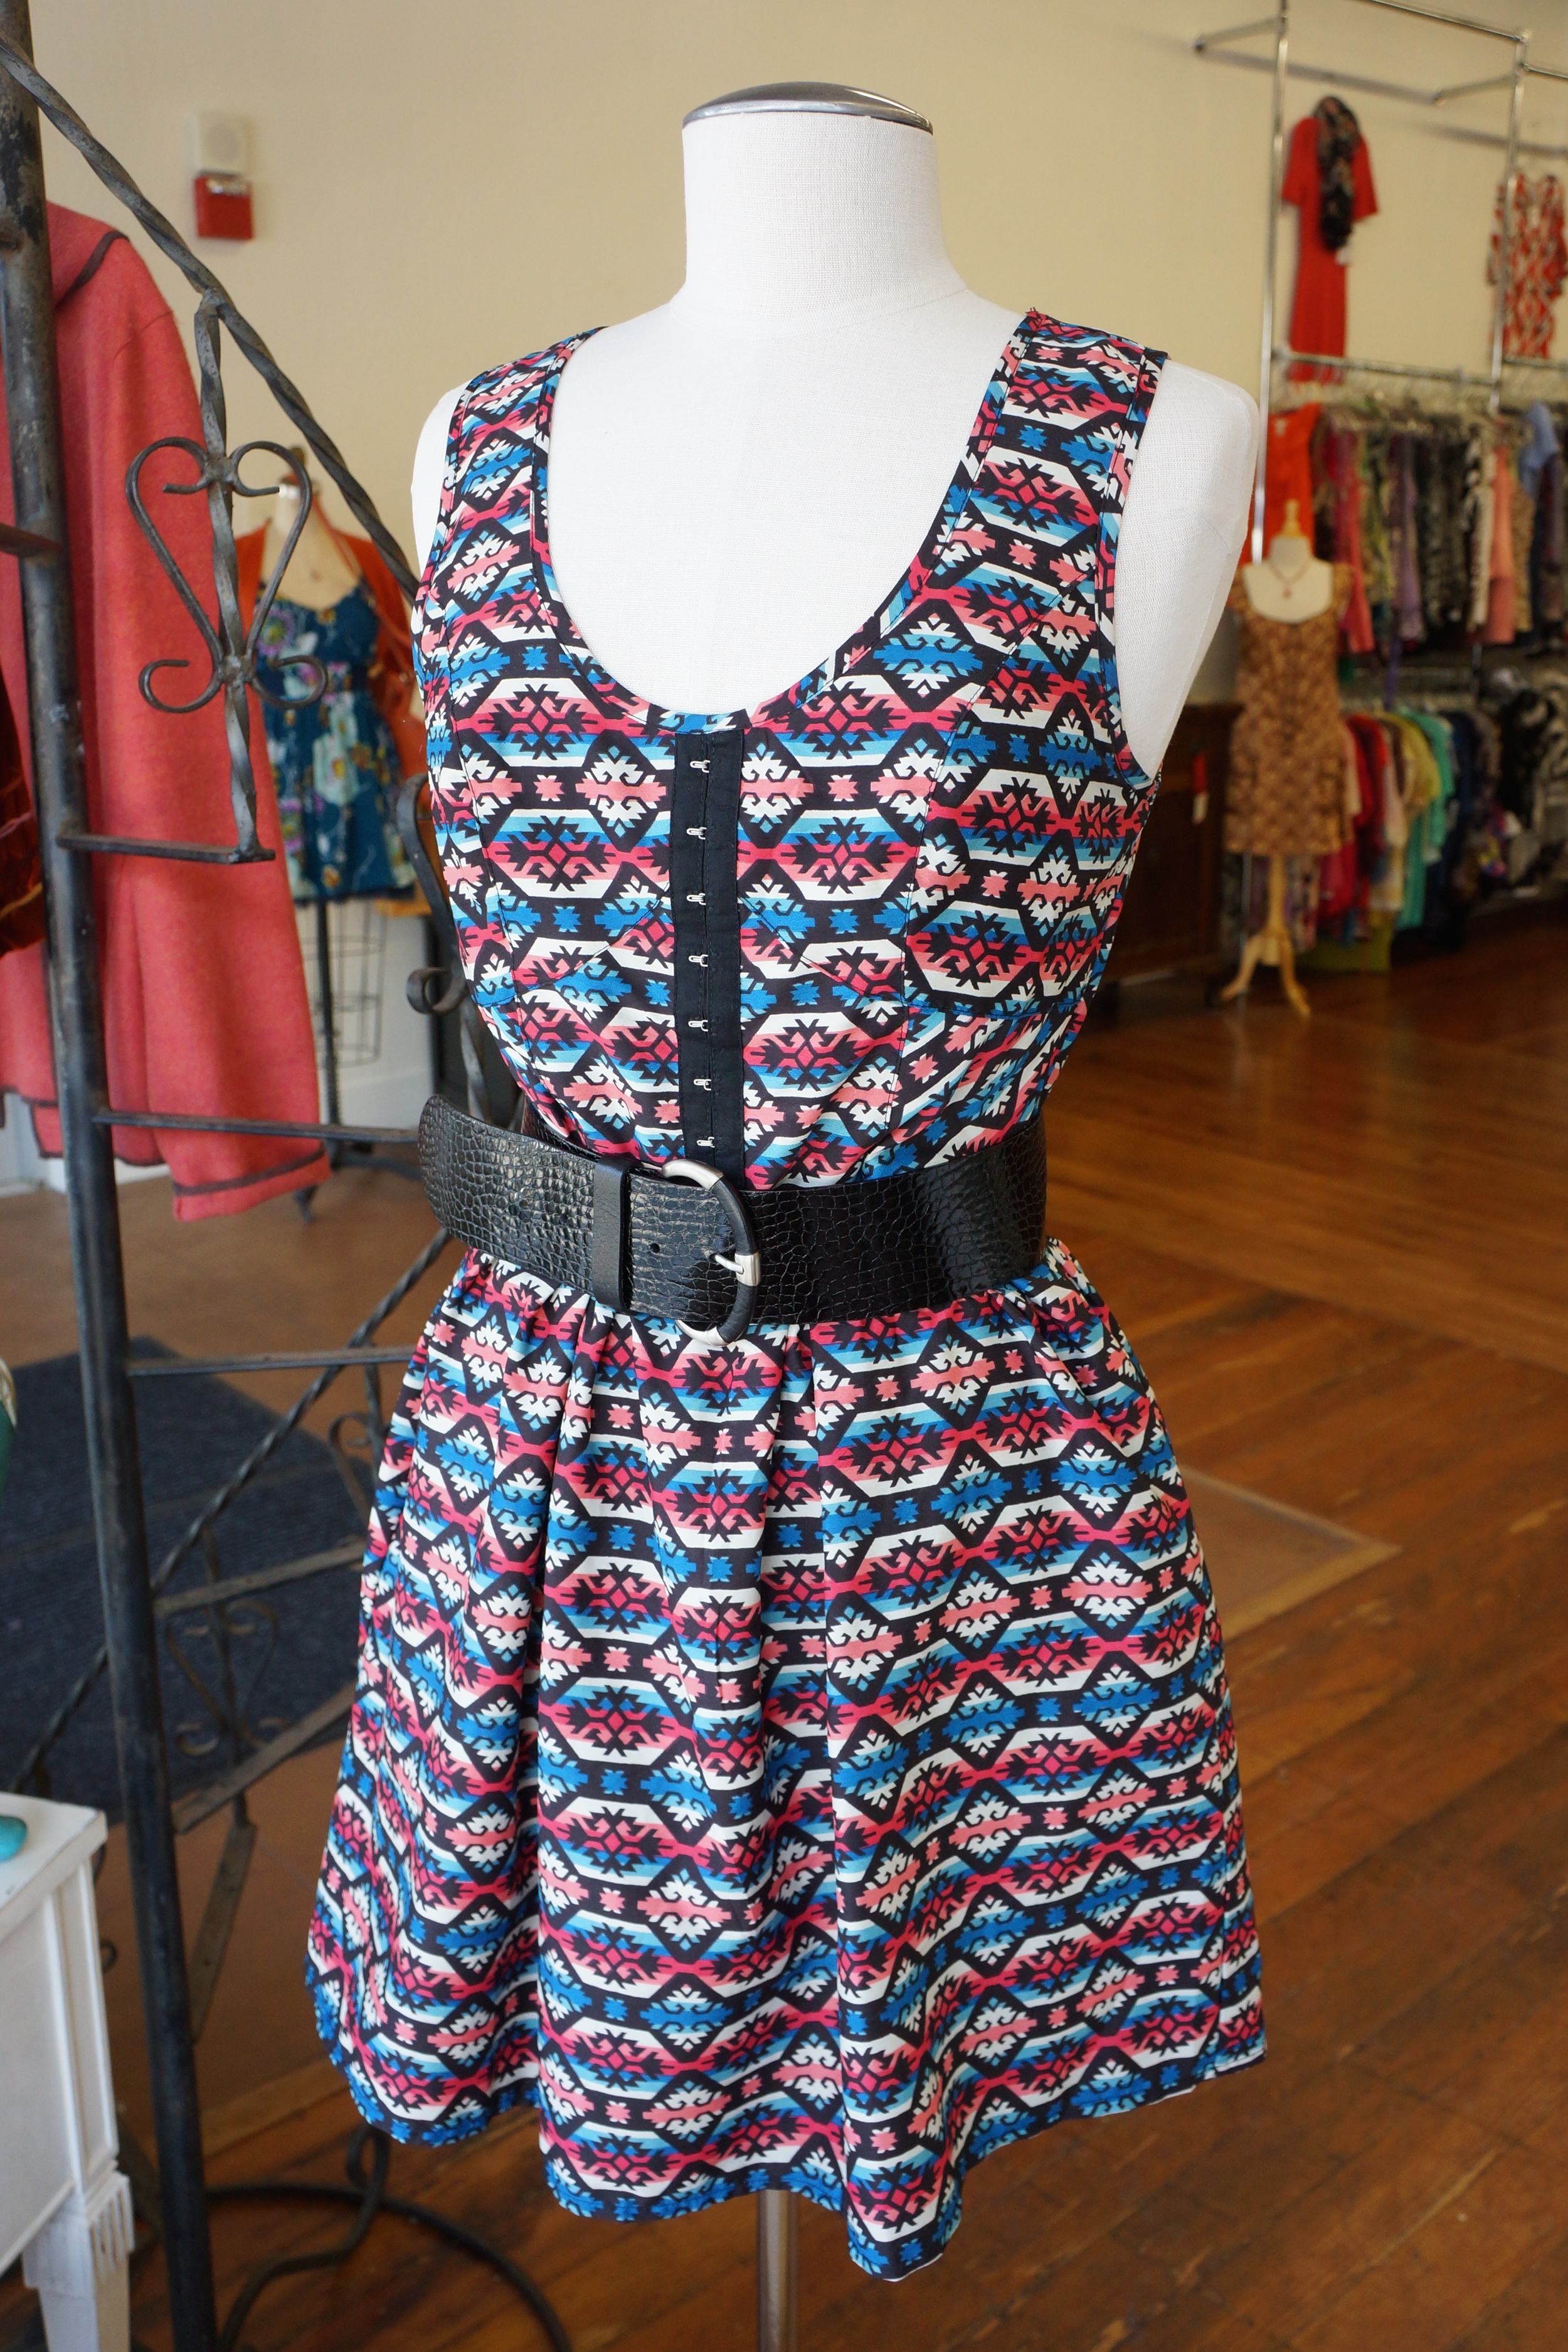 Band of Gypsies    Size M      $19